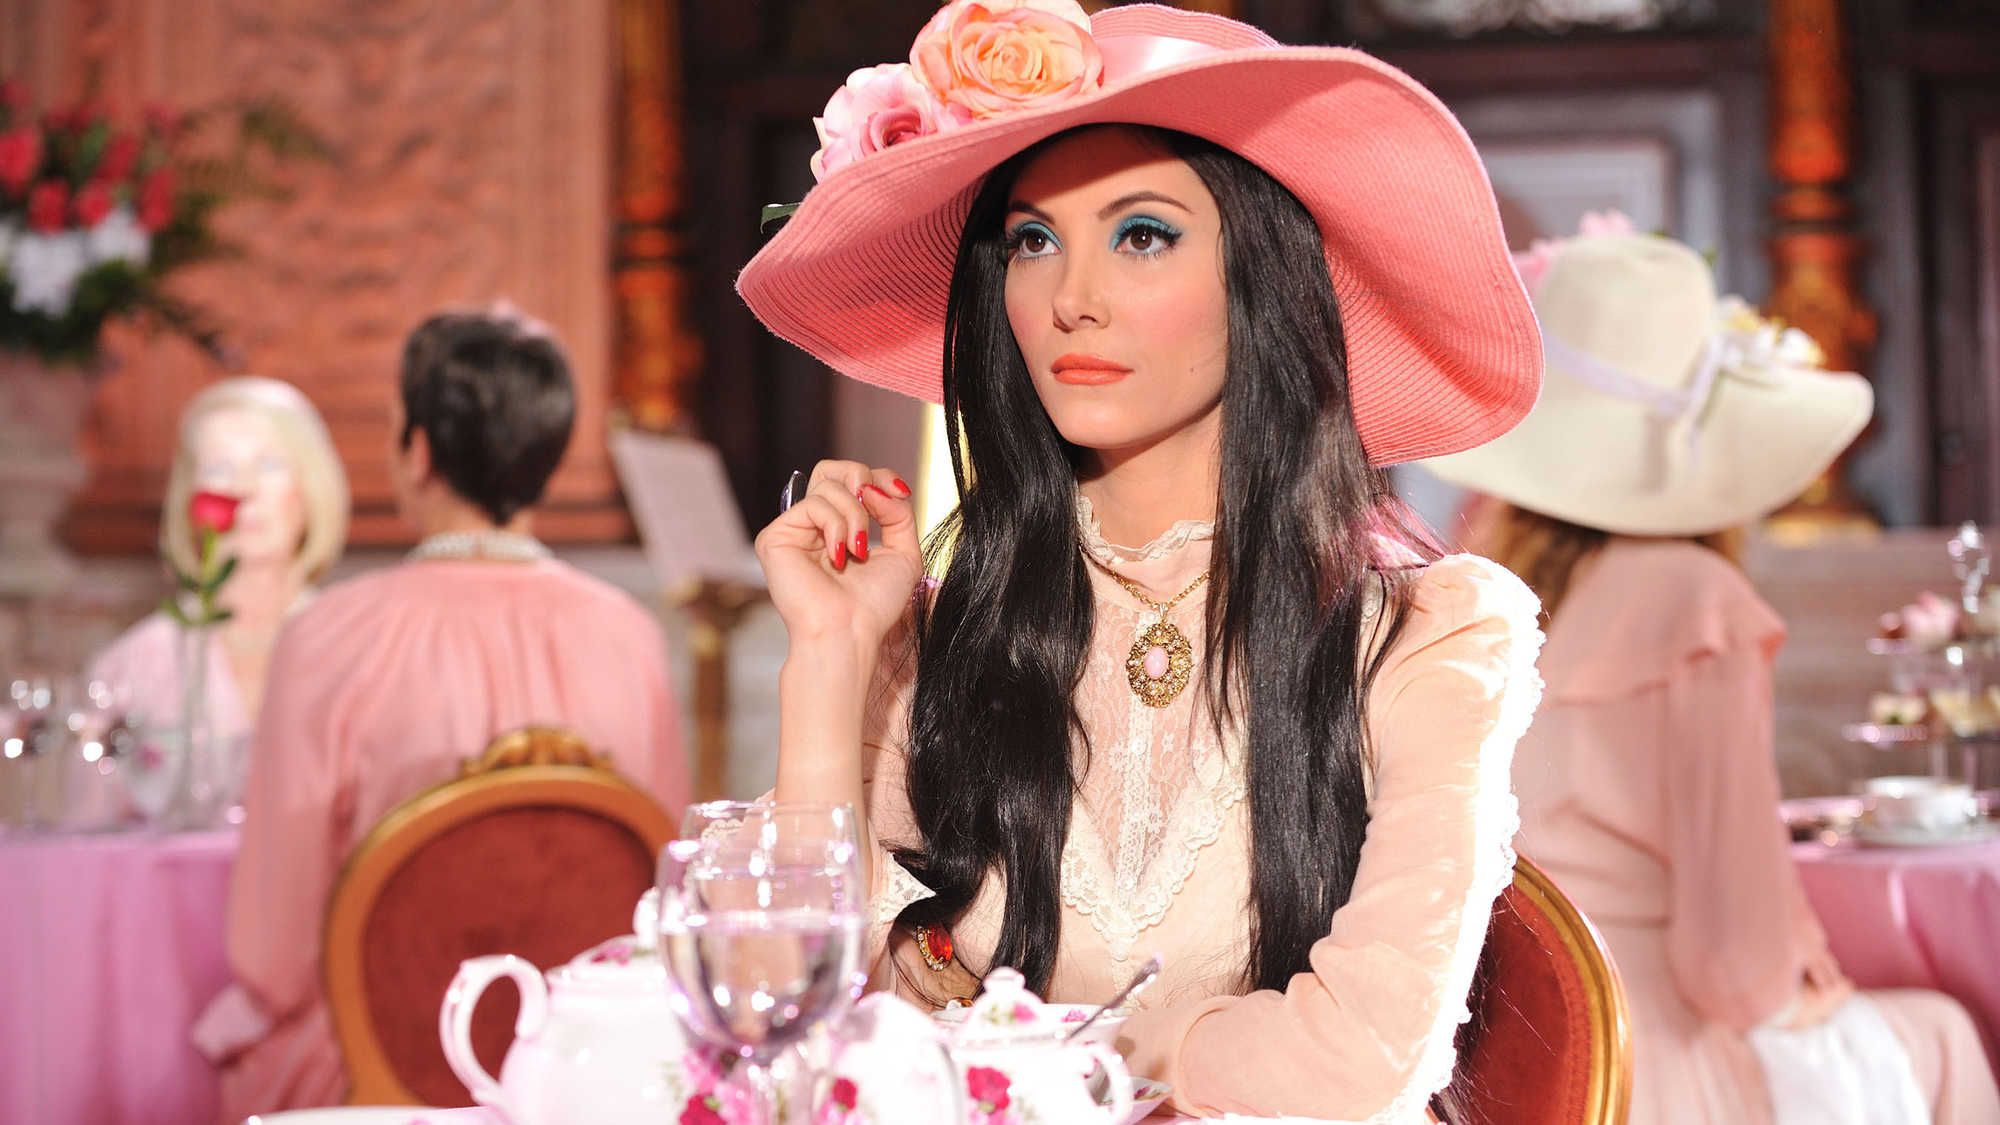 The Love Witch (image 6)